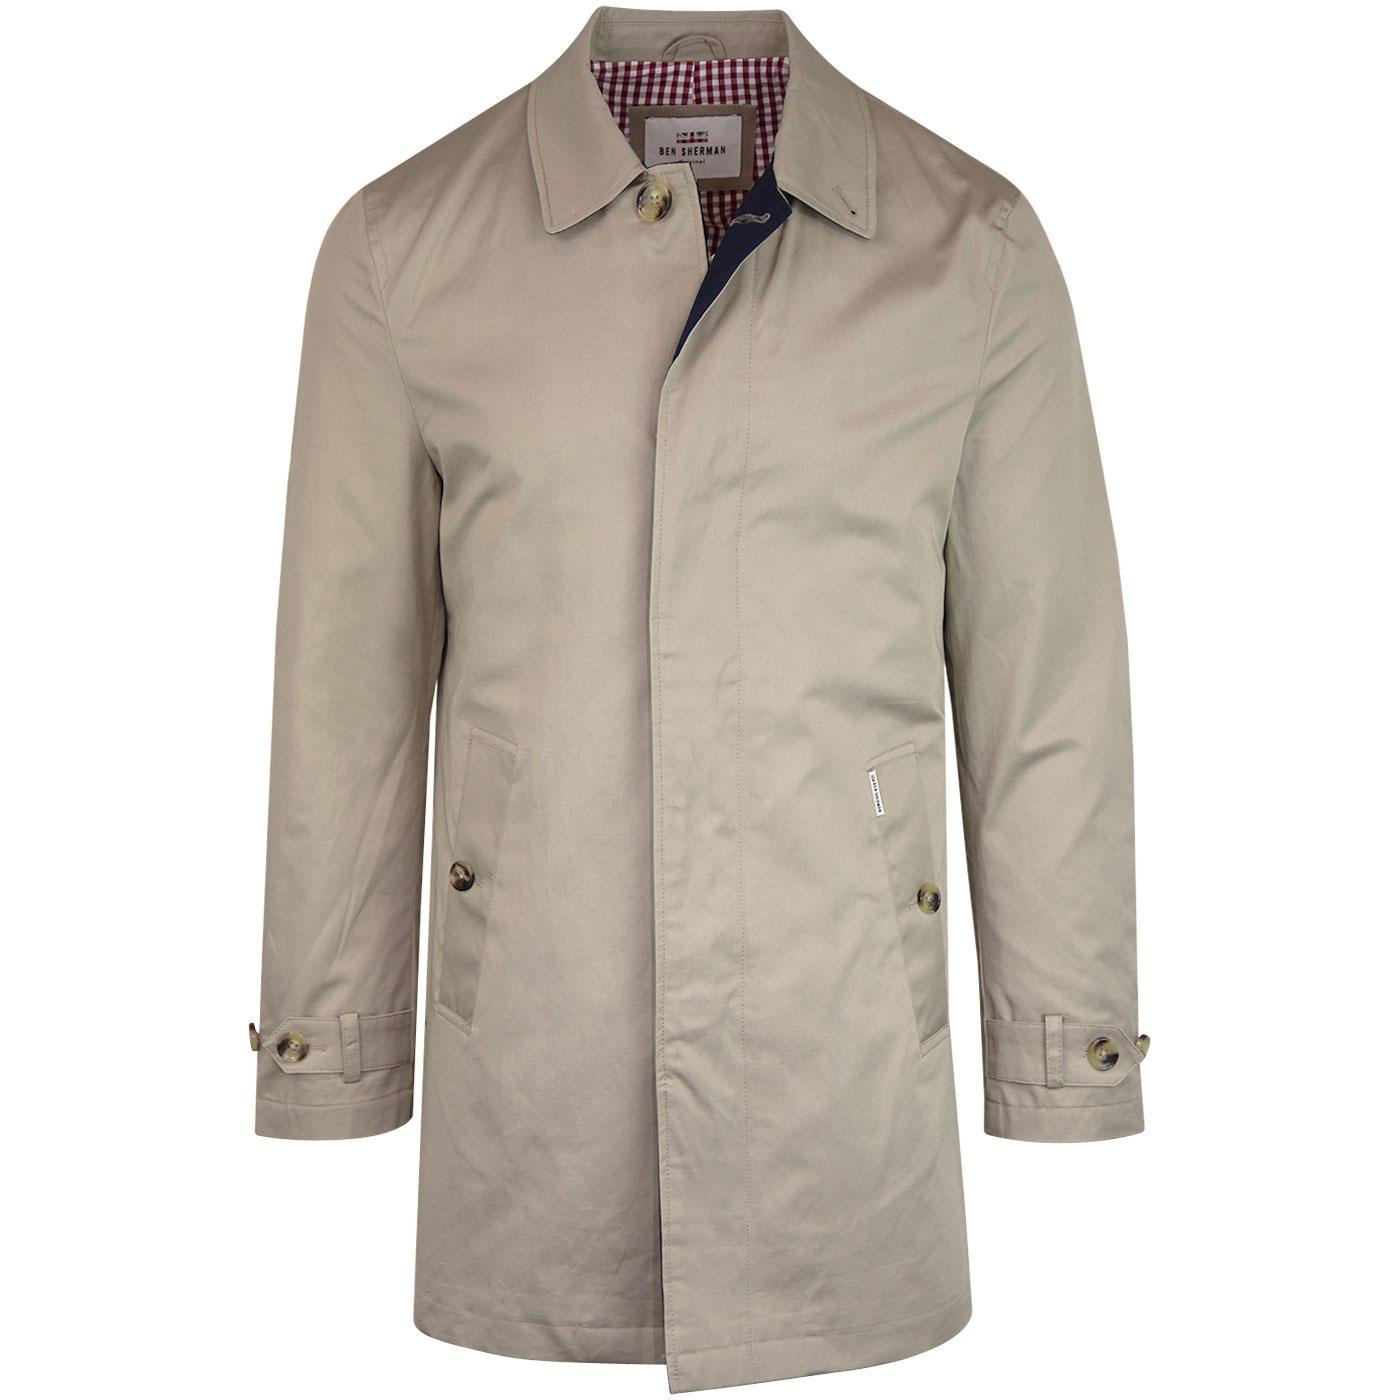 BEN SHERMAN Men's Retro Mod New Mac Coat (Stone)